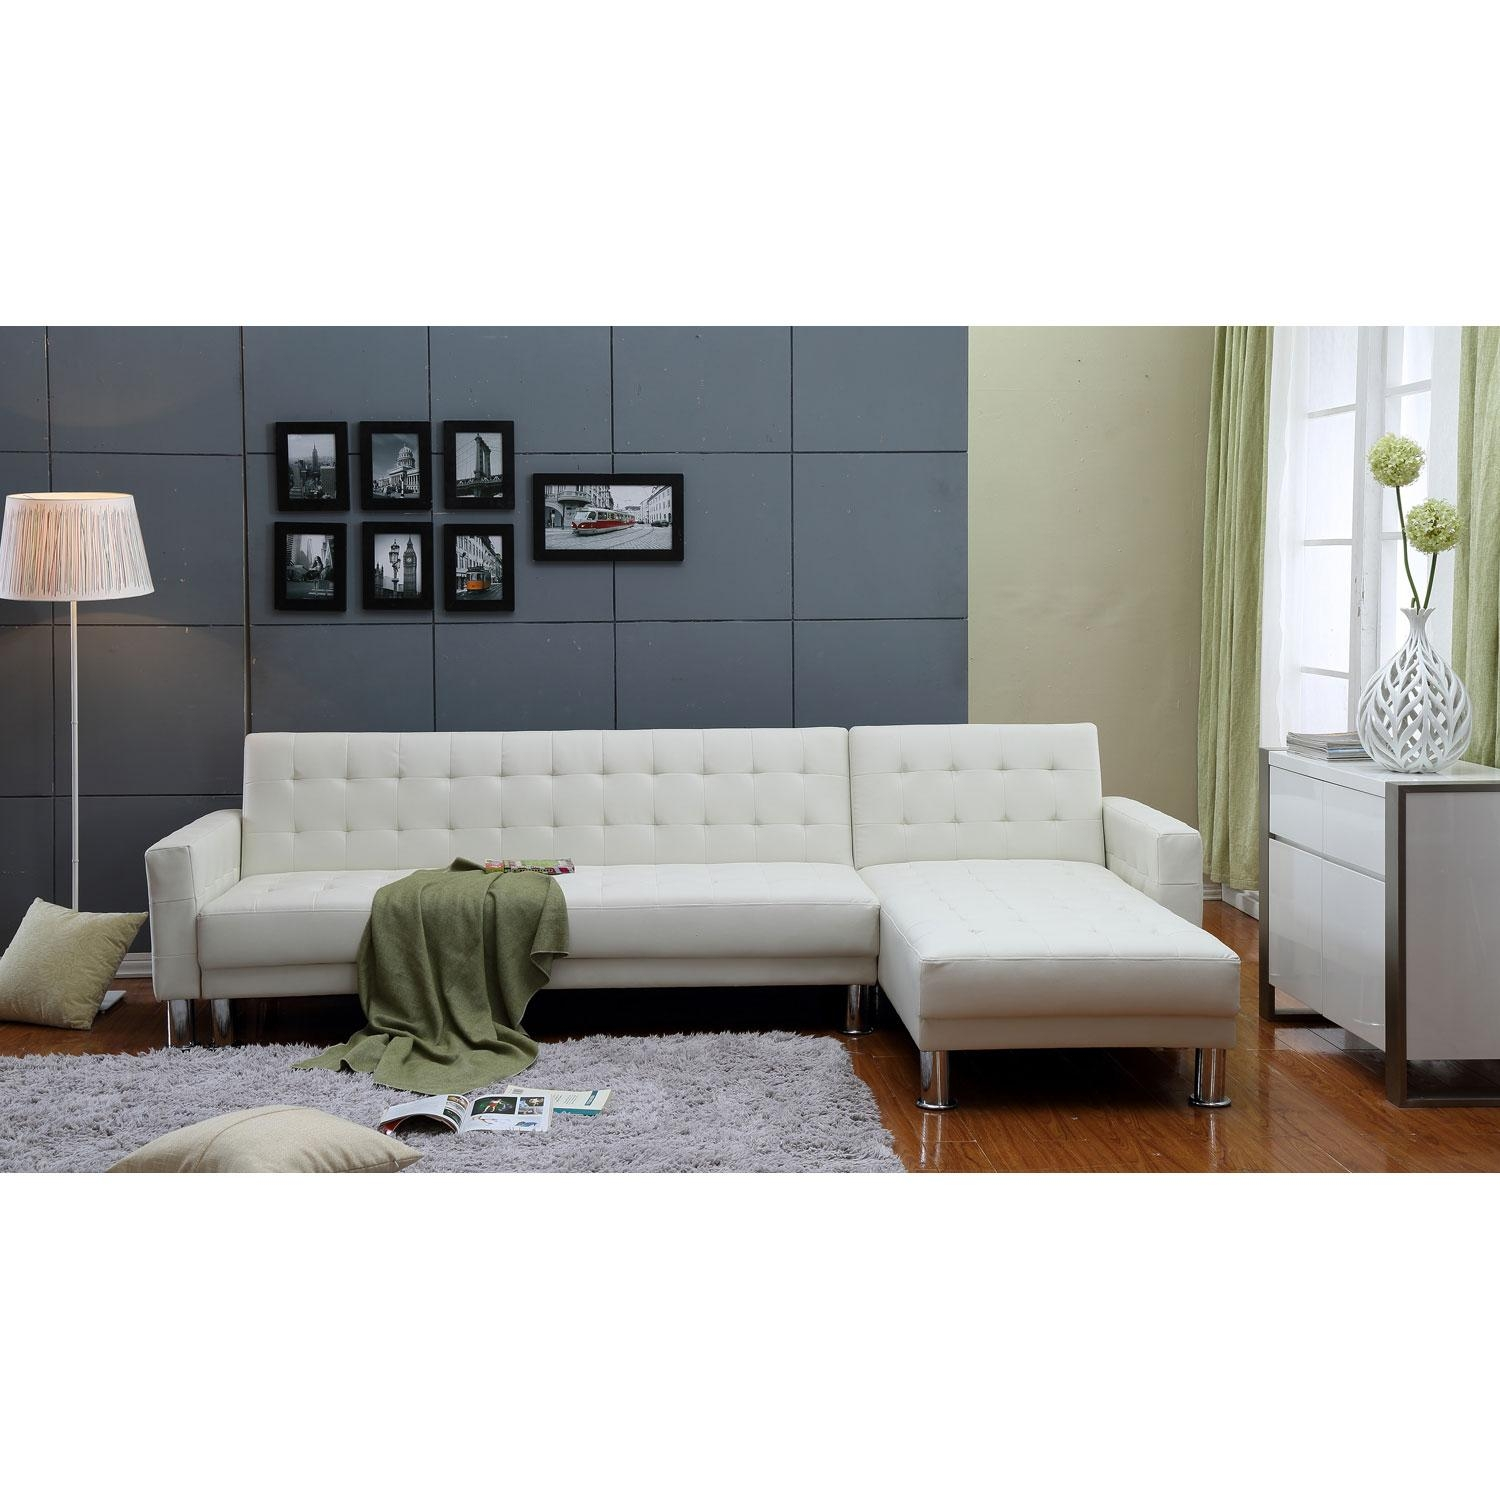 Sofas : Marvelous Large Sectional Couch 2 Piece Sectional With Regarding Small 2 Piece Sectional Sofas (Image 20 of 23)